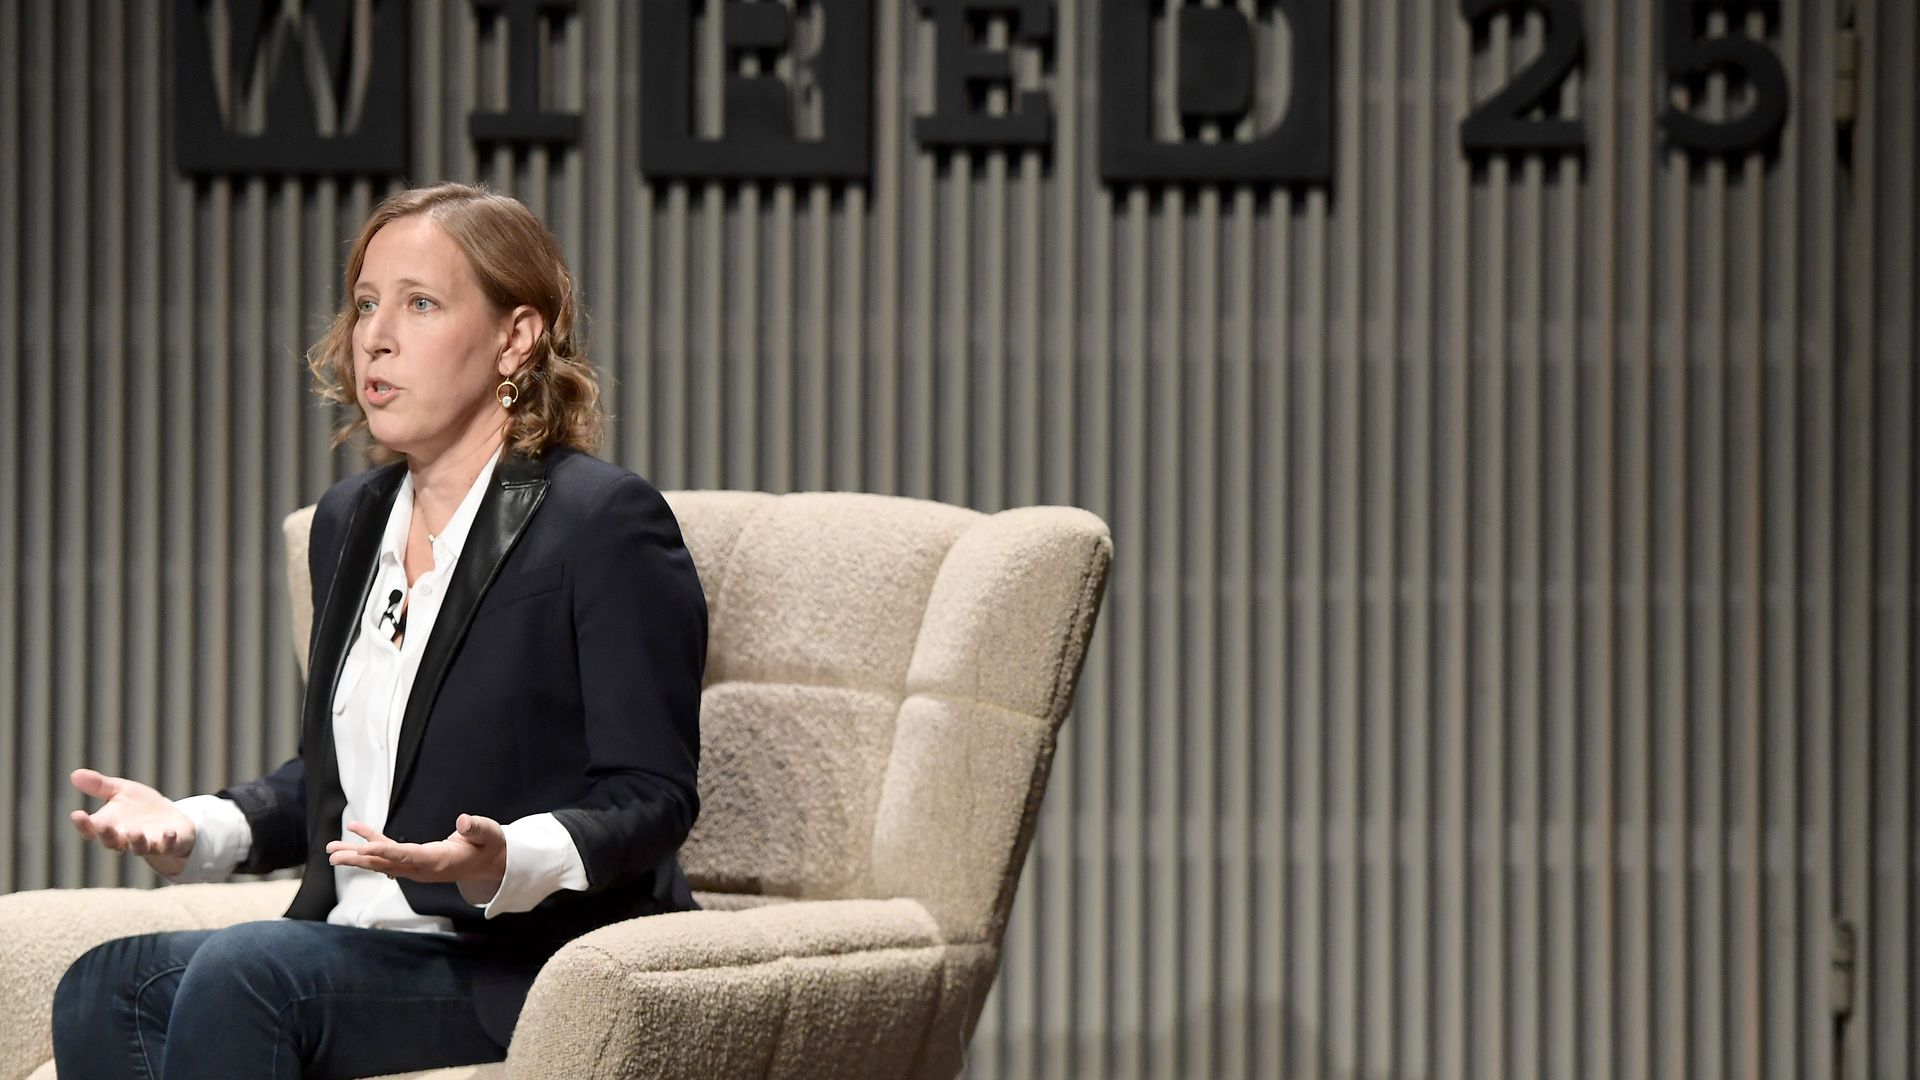 Susan Wojcicki sits onstage behind a sigh that says WIRED25